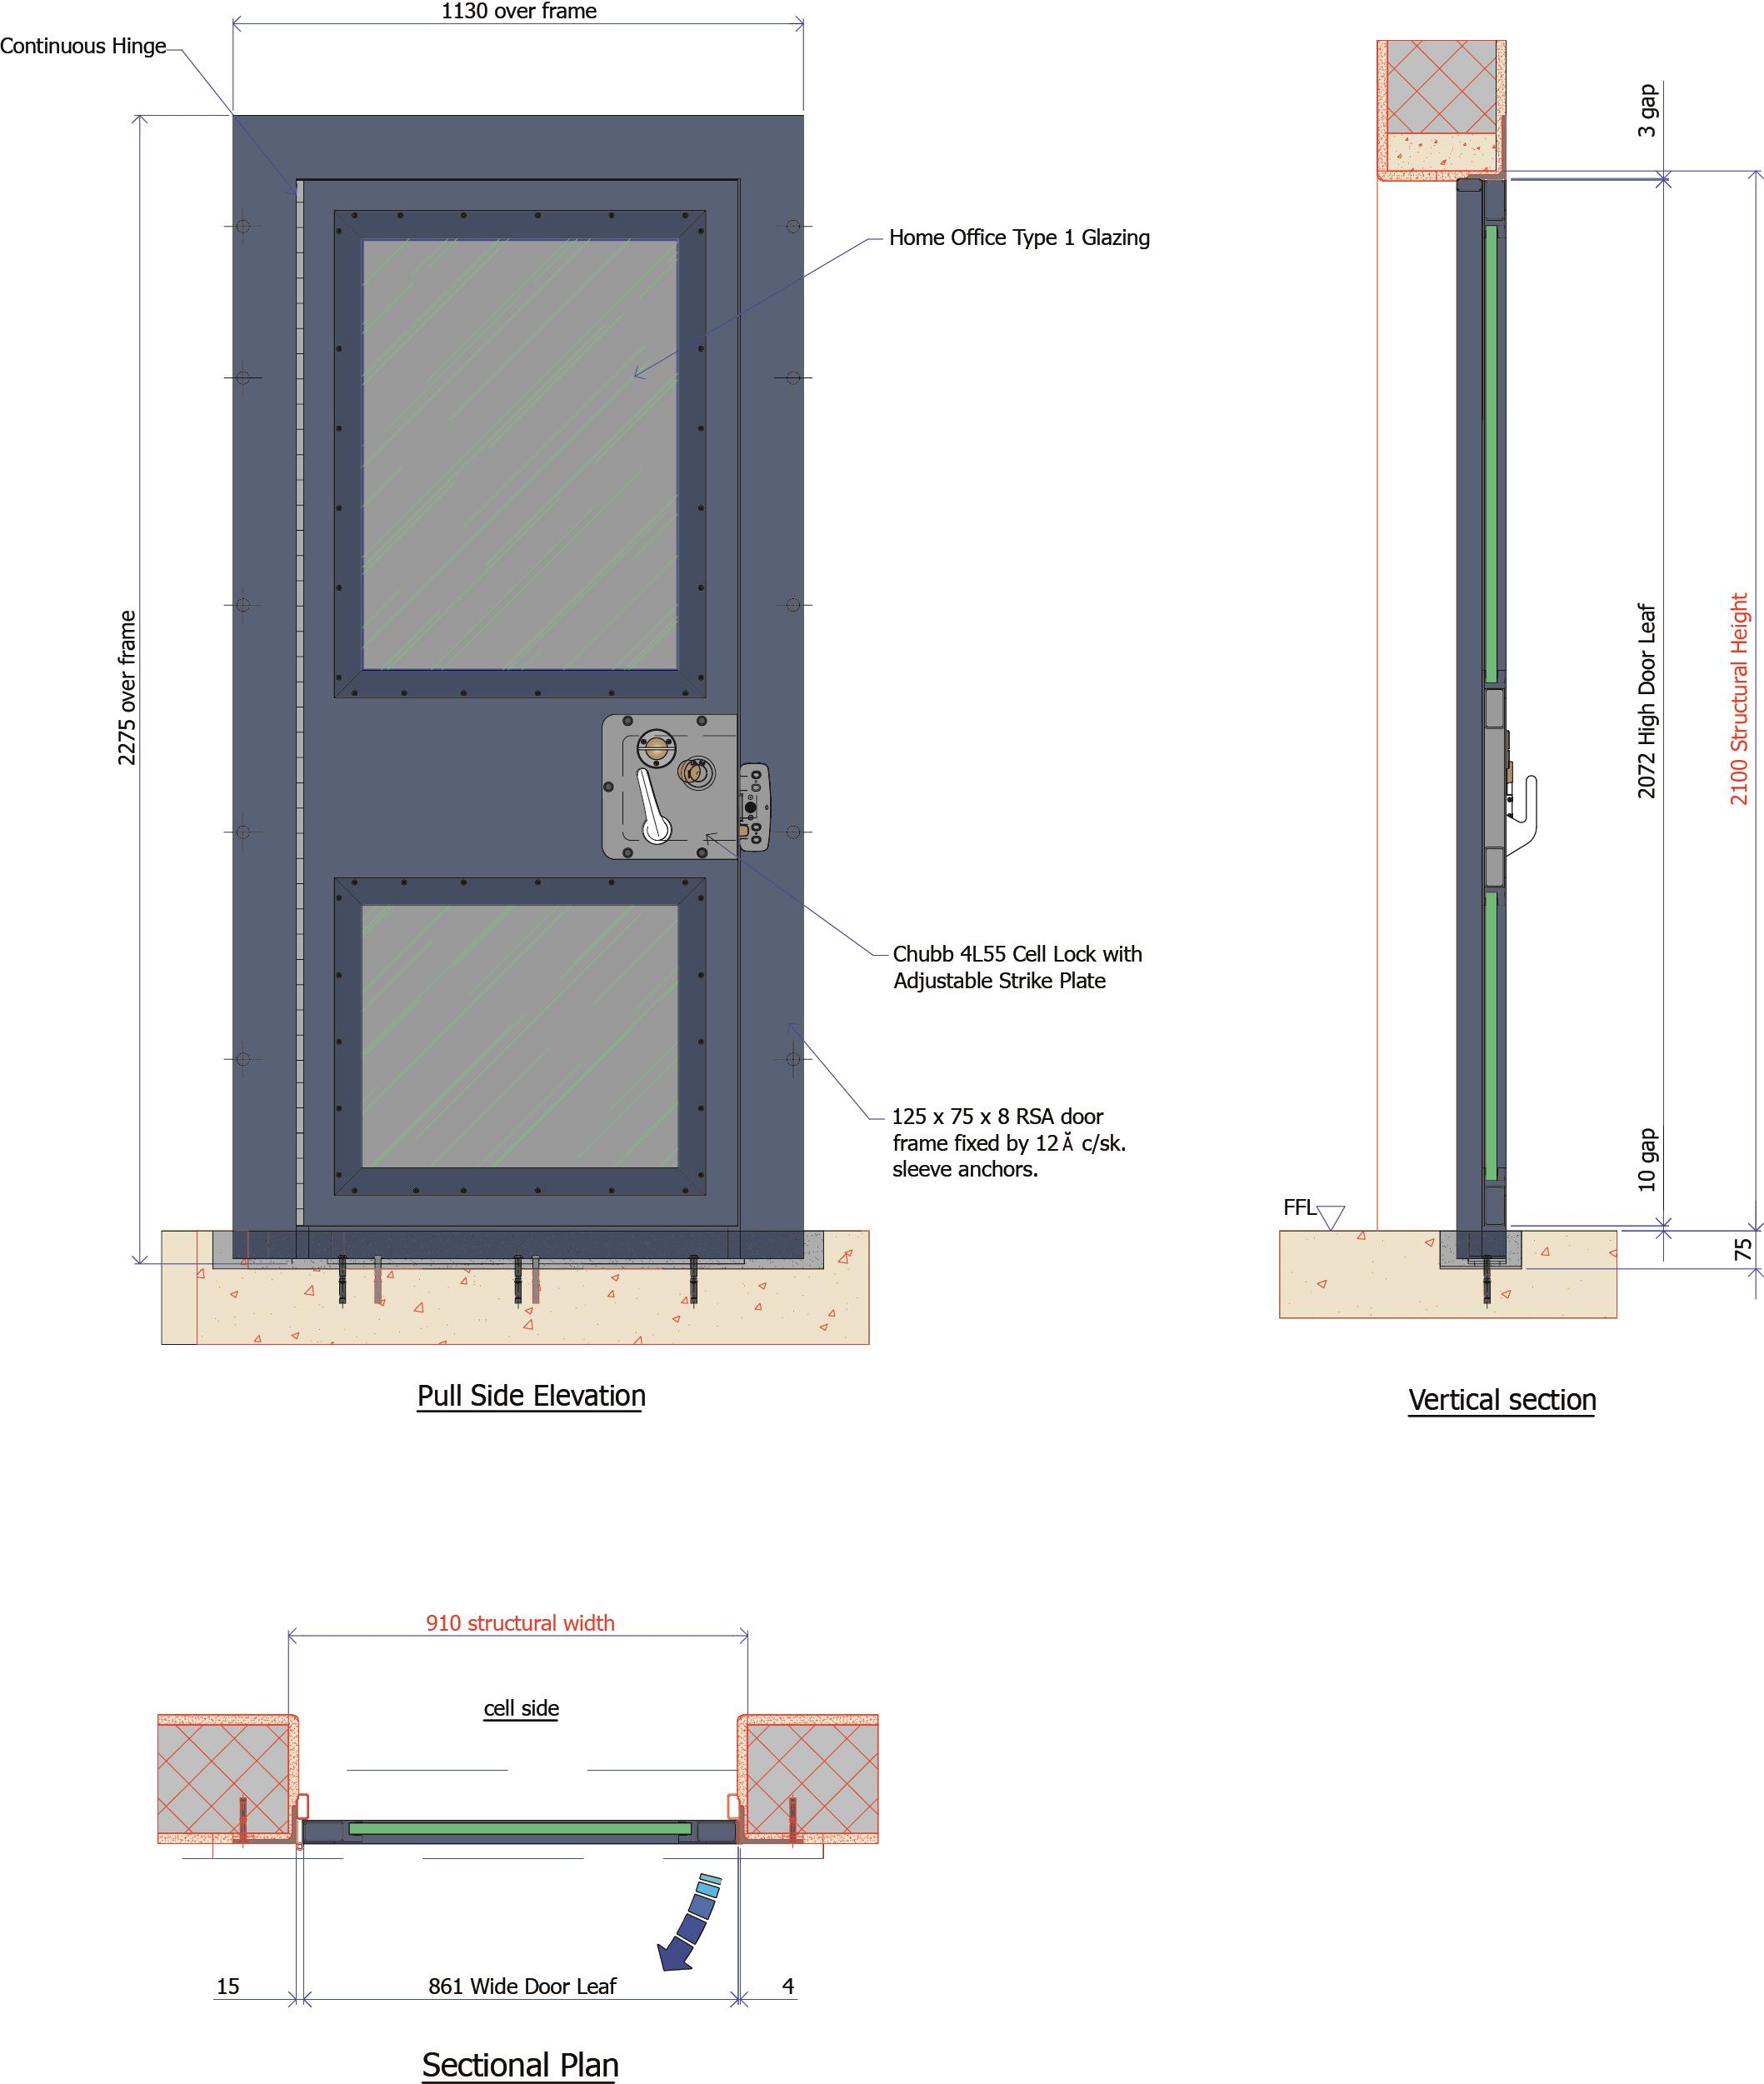 9D003 - Observation Cell Door